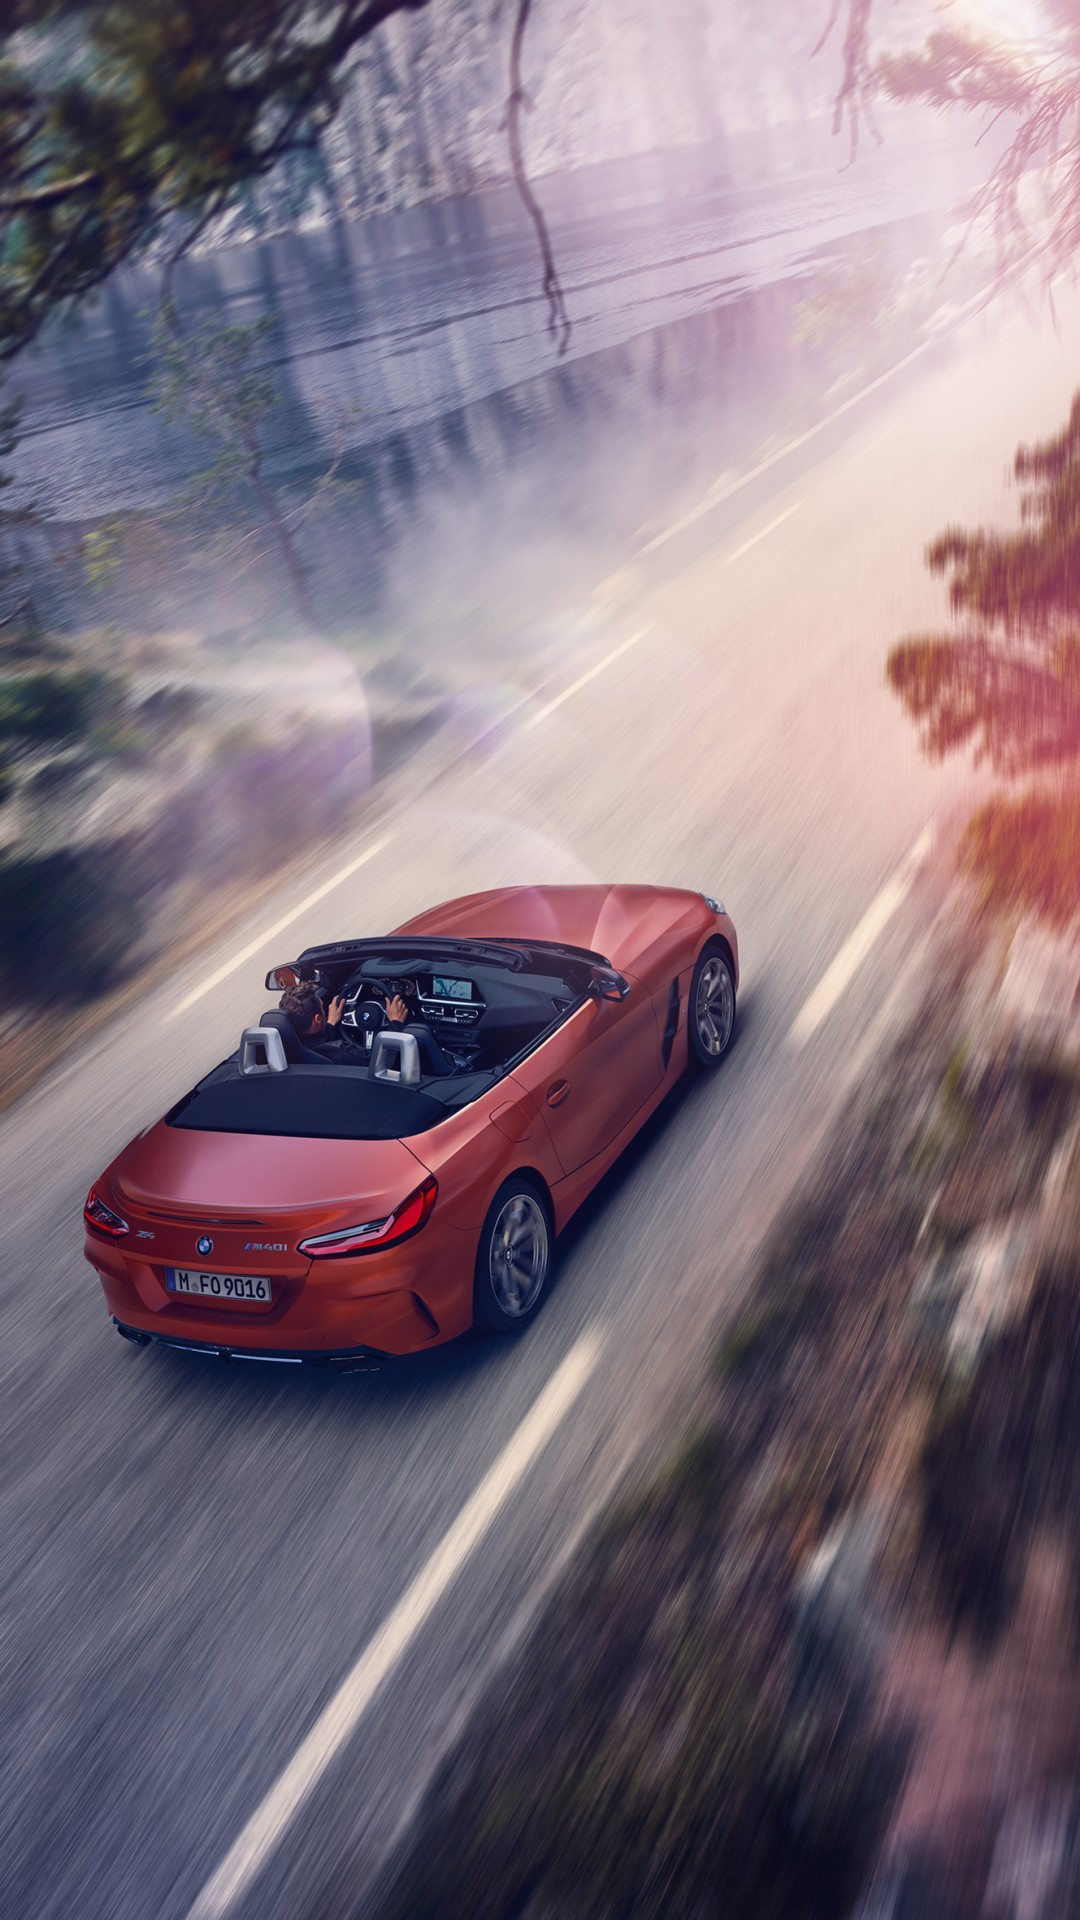 Wallpaper Bmw Z4 M40i First Edition 2019 Cars Sports Car